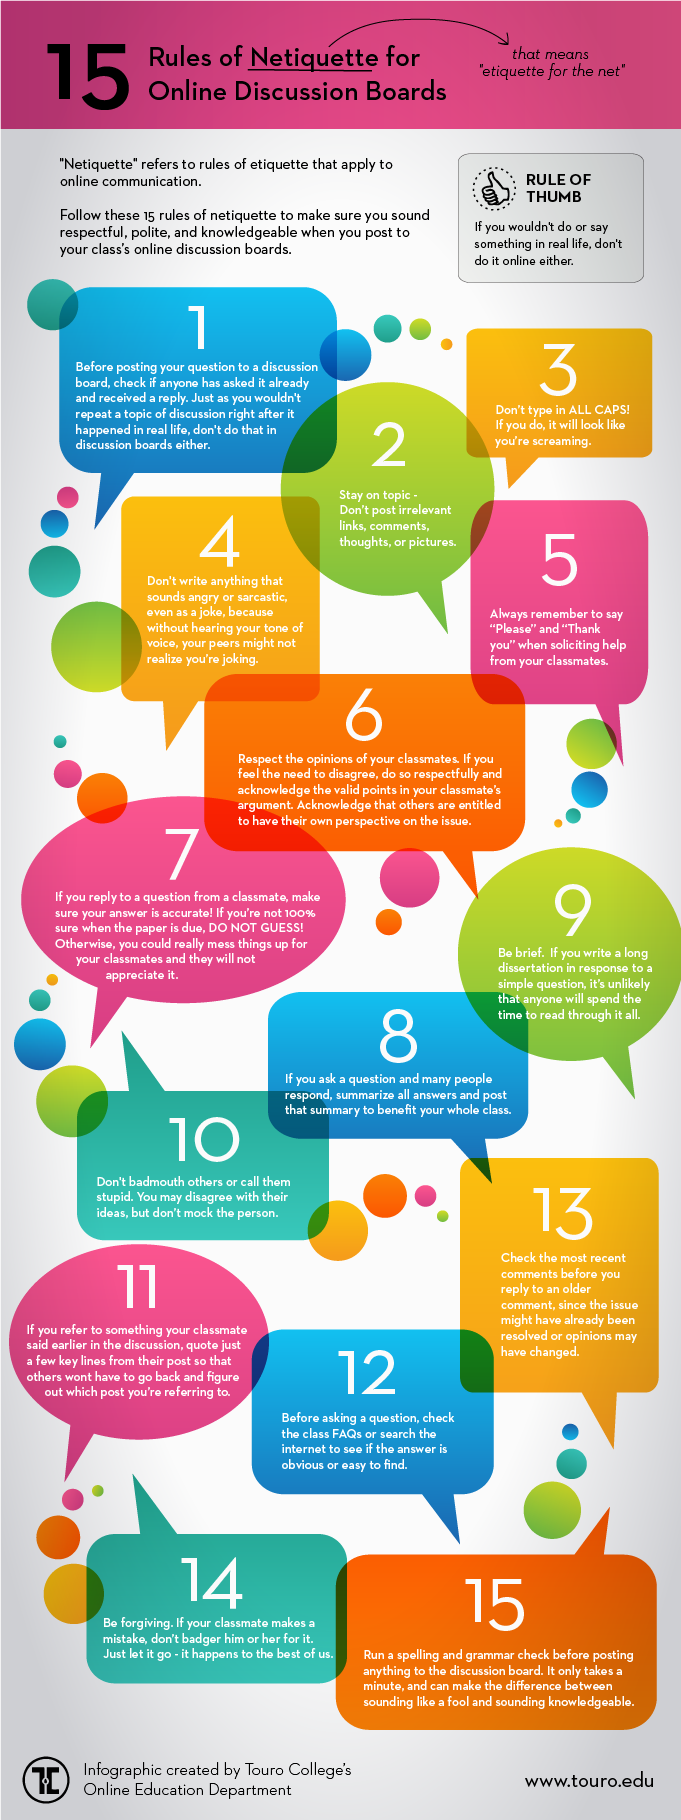 15 Tips For Online College Discussion Boards